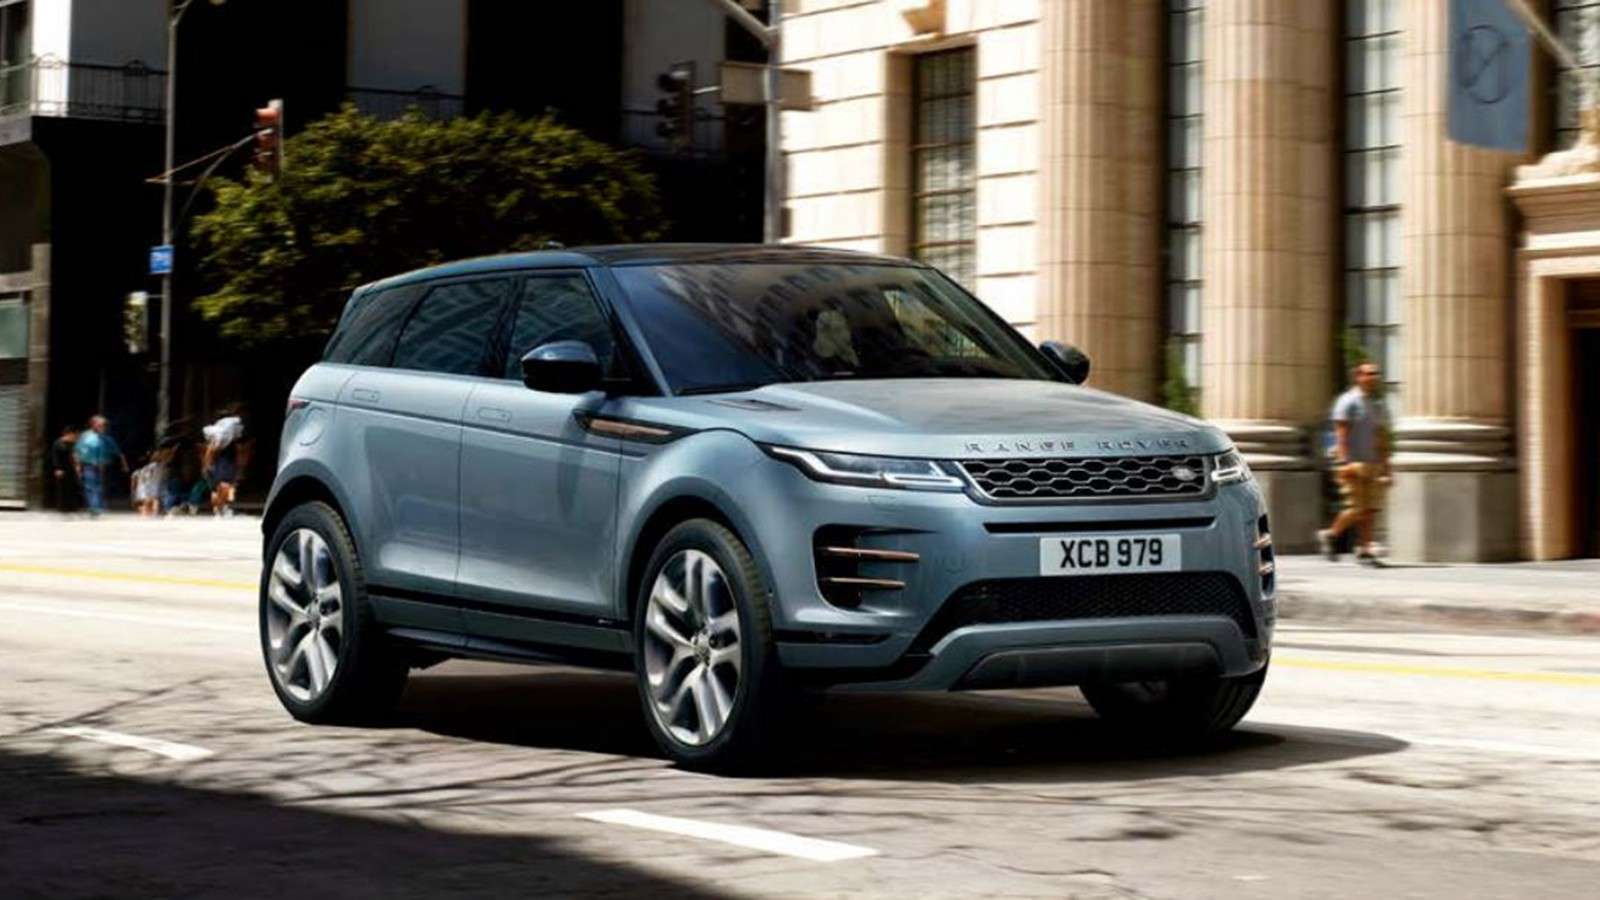 New Land Rover Range Rover Evoque 2020 2021 Price In Malaysia Specs Images Reviews